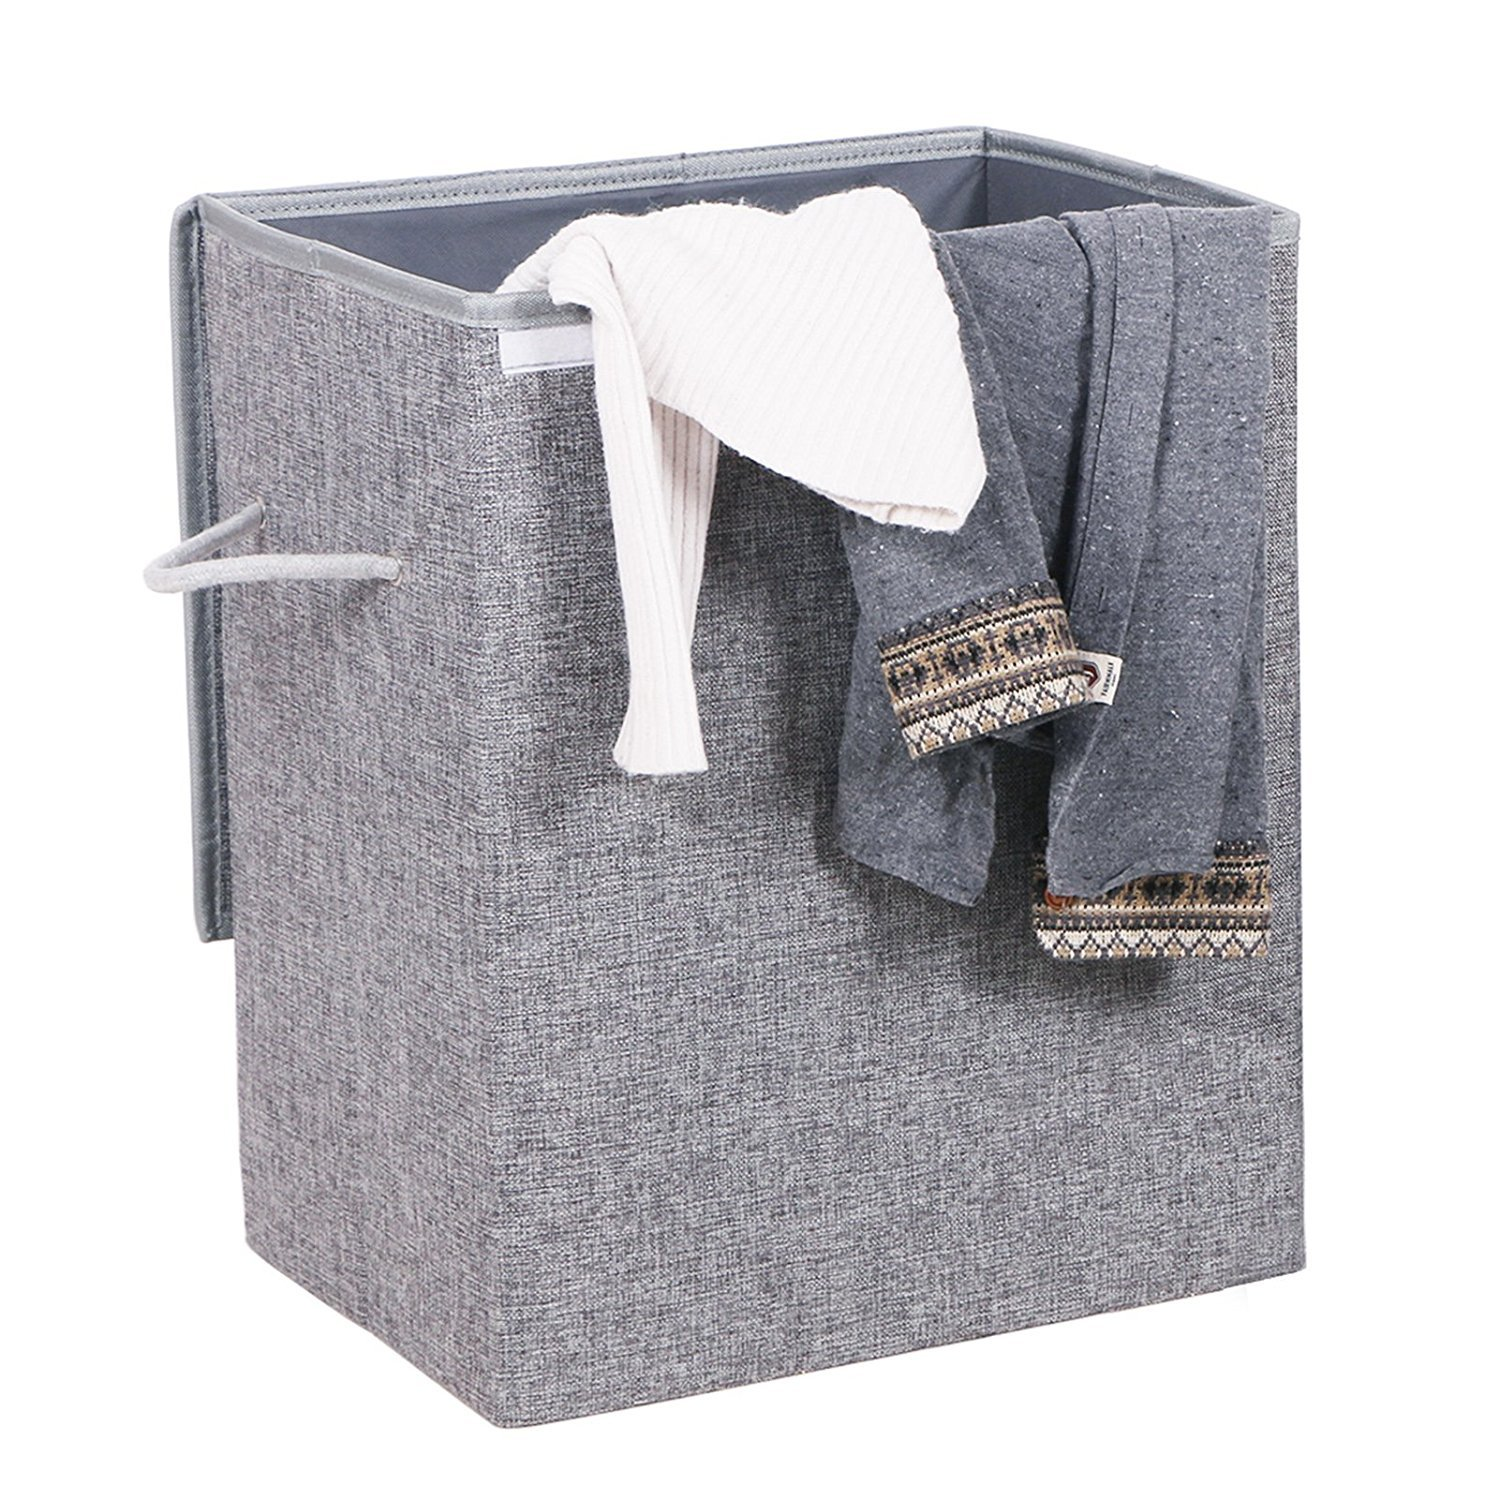 BEWISHOME Foldable Laundry Hamper,Large Laundry Basket Storage Bin for Clothes,Dirty Clothes Hamper w/Lids/Velcro,Grey Hamper with Removable liners & Sturdy Handles Grey YYL01G